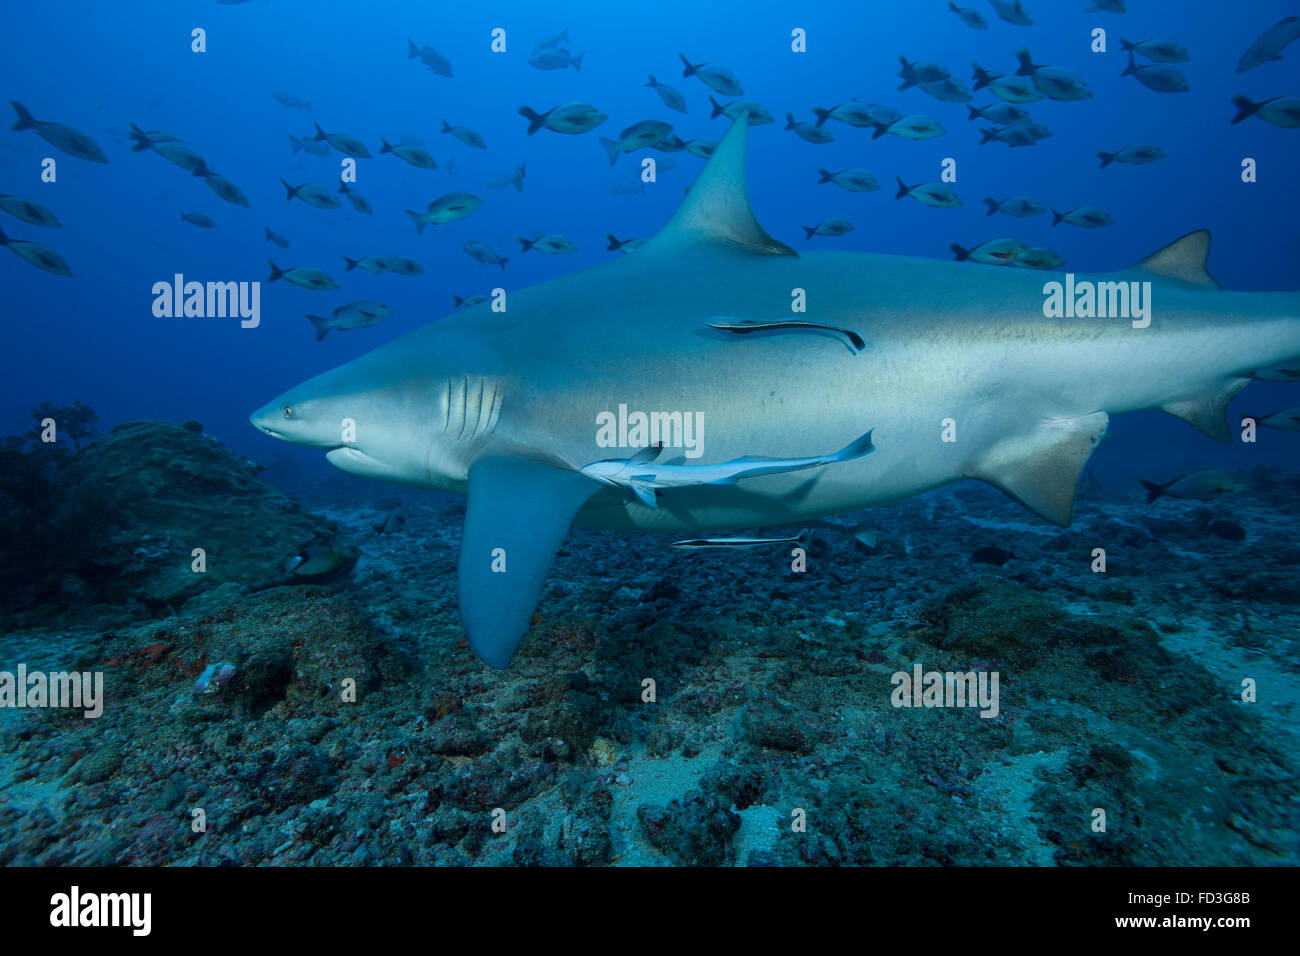 A large bull shark (Carcharhinus leucas) at The Bistro dive site in Fiji. Stock Photo